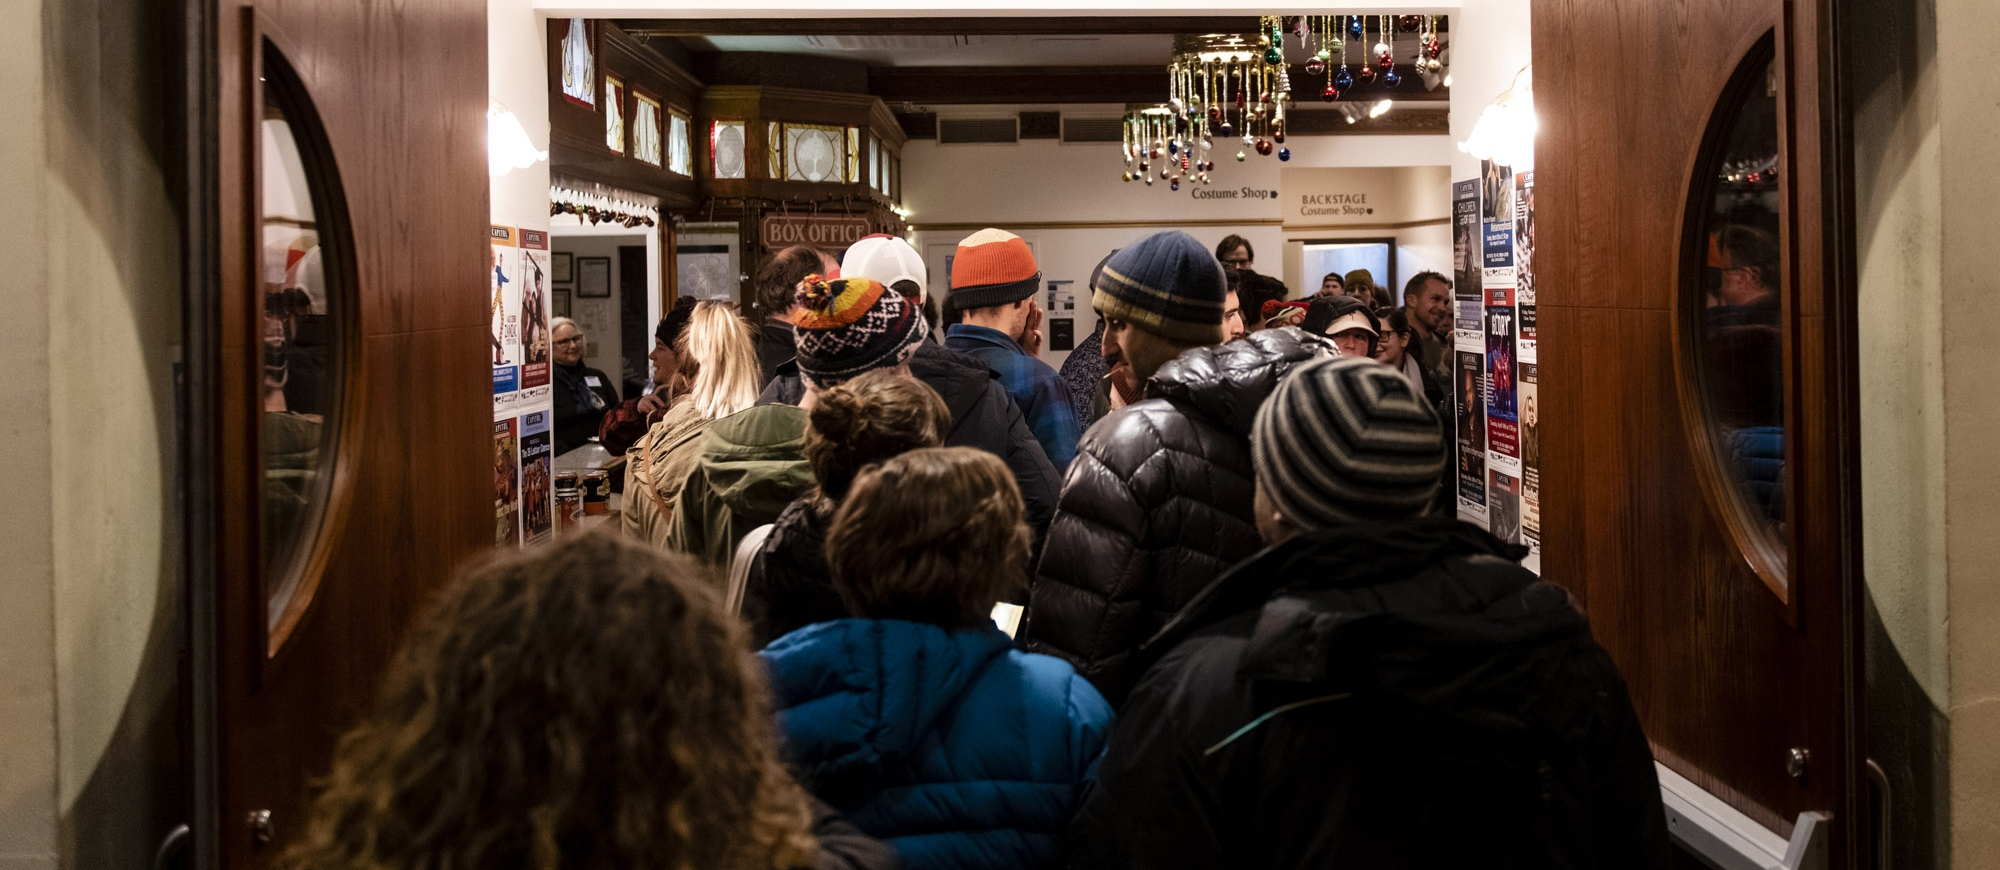 A crowd walking into the Capitol Theatre in Nelson, BC during the Banff Mountain Film Festival